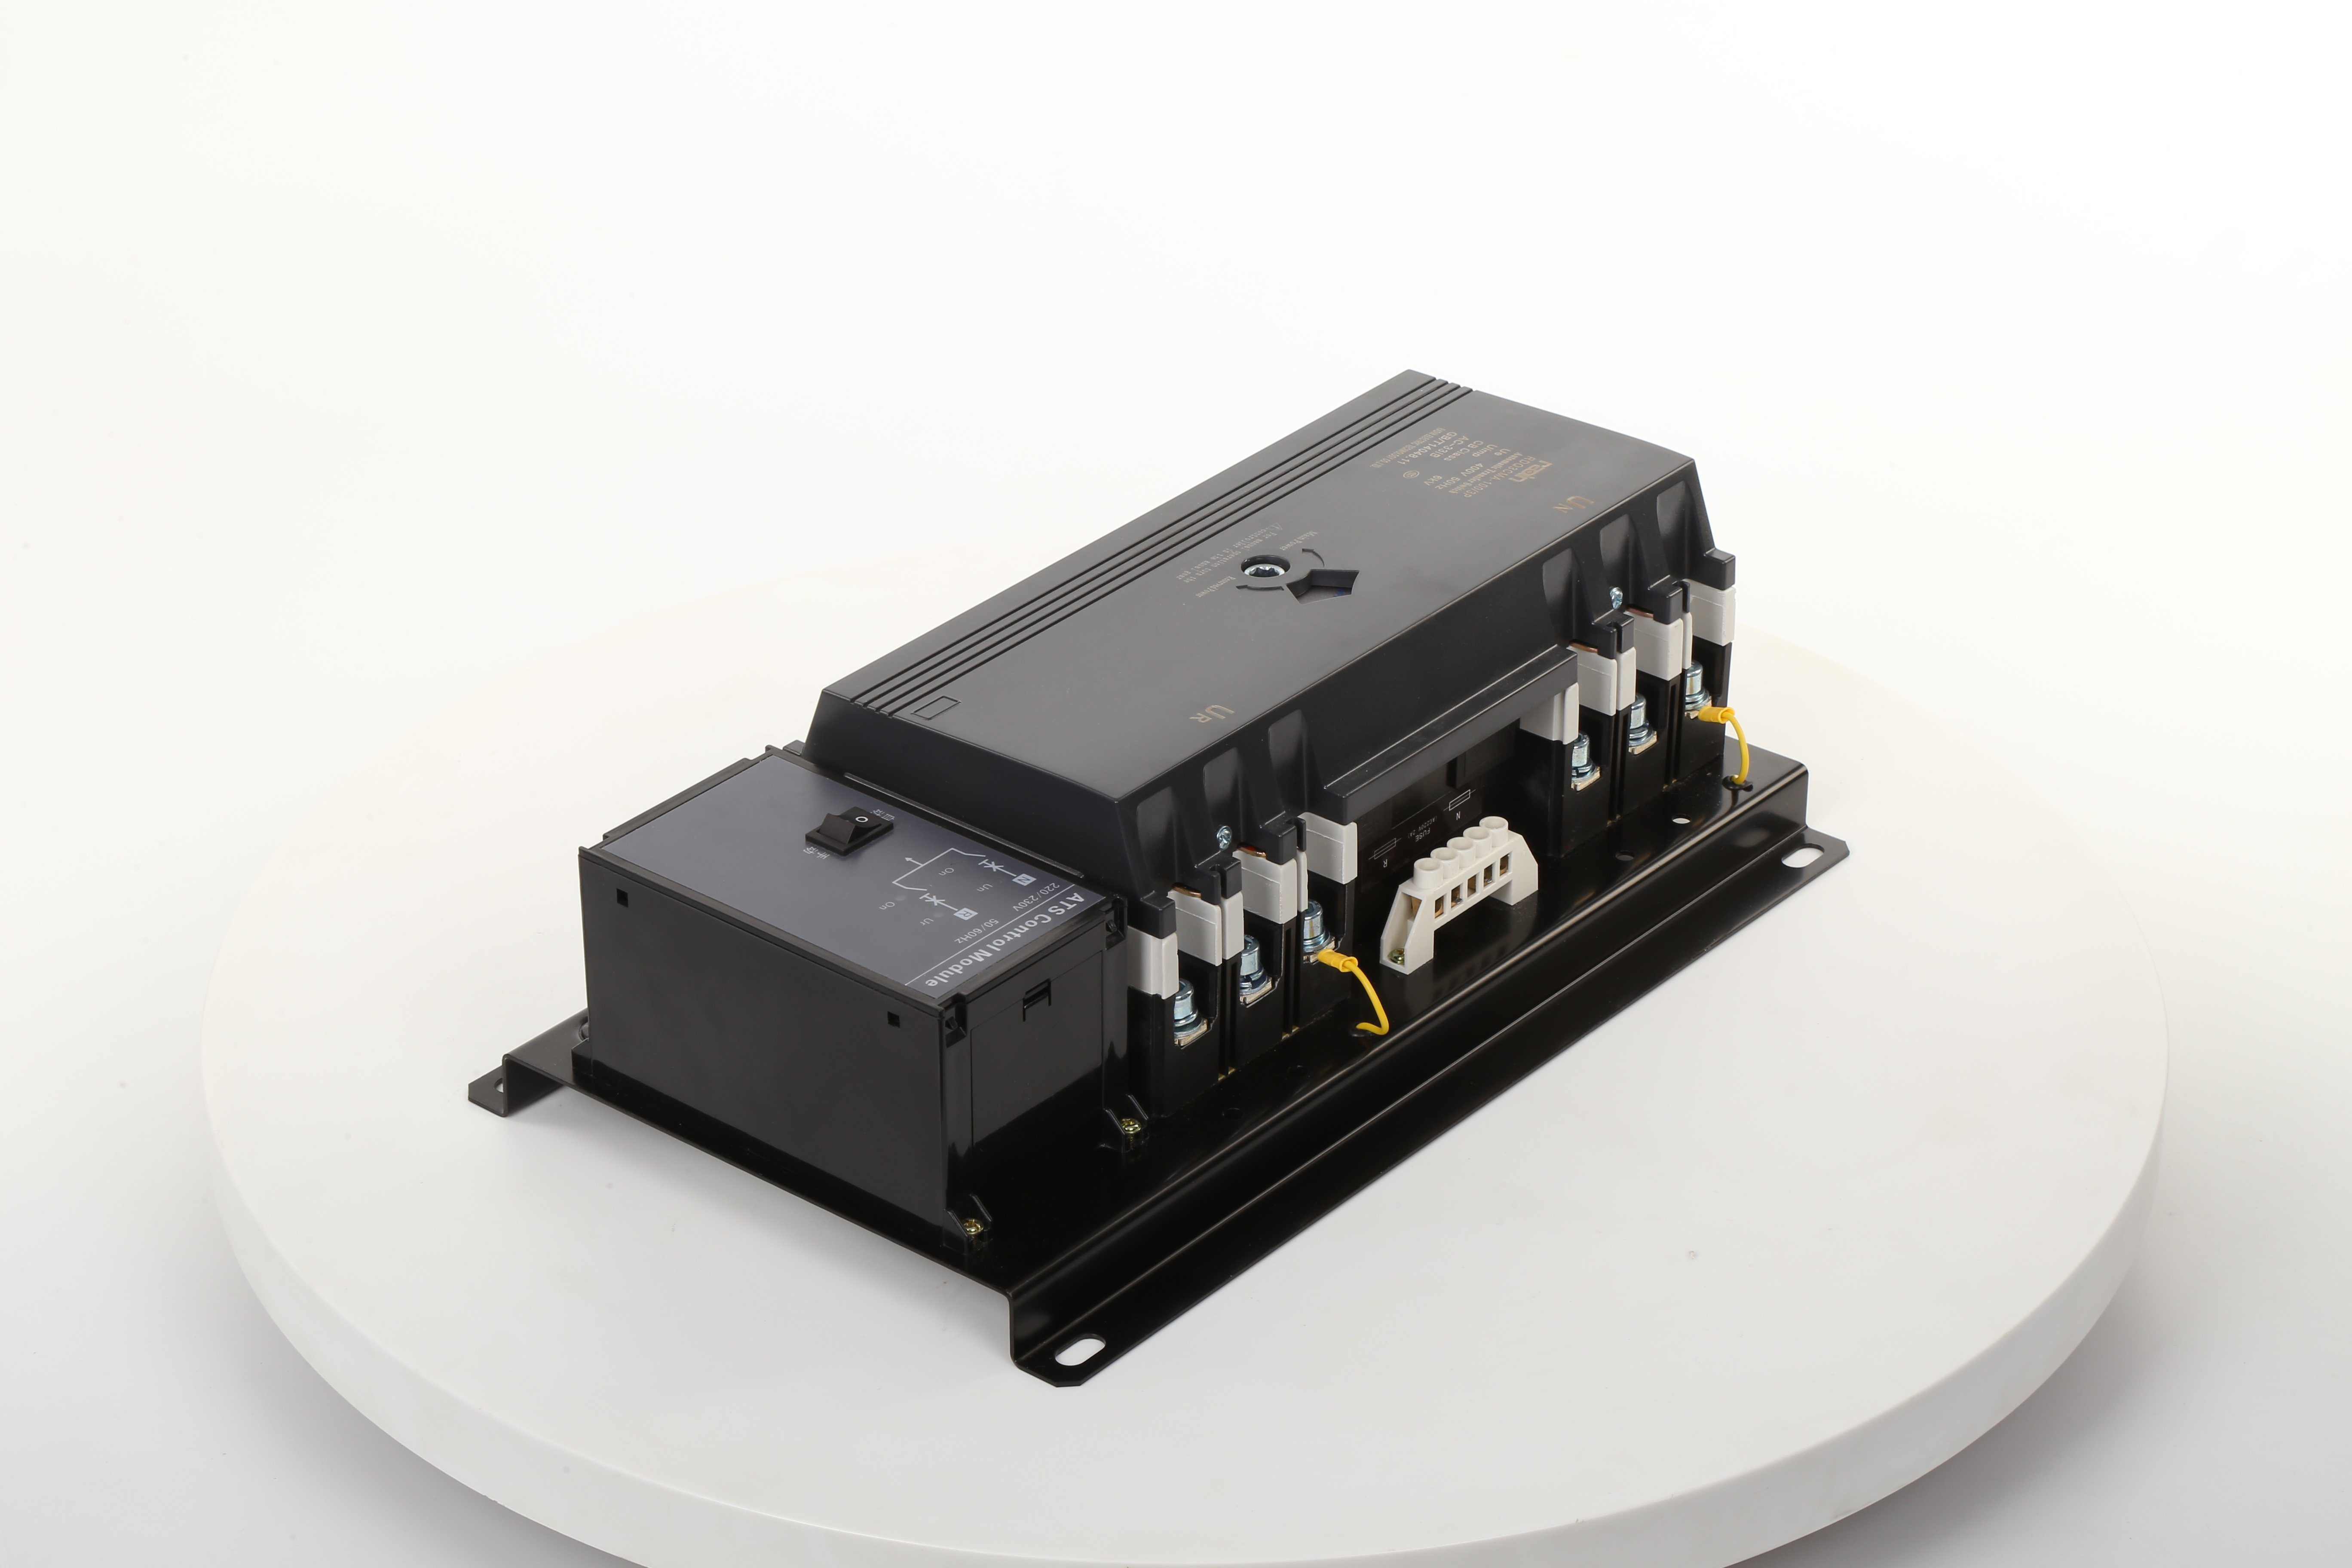 rdq3nma series intelligent ats comprised with two 3p or 4p mccb and its  accessories (aux  contact, alarm contact), mechanical interlocking  transmission